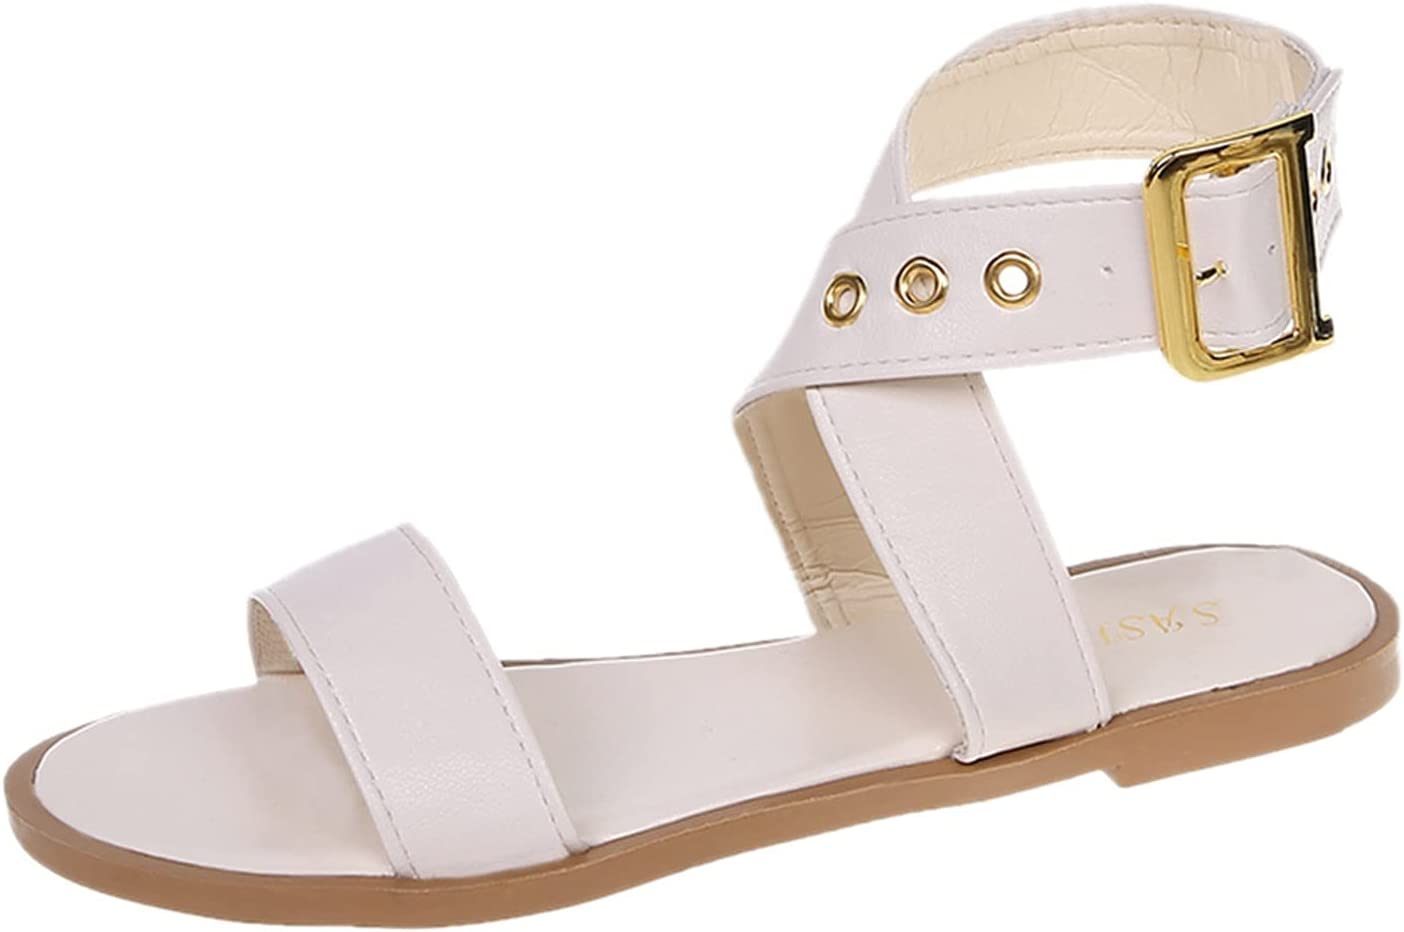 PLENTOP Lace-Up Flats Sandals for Beach Outdoor Women 100% quality warranty Memphis Mall Sho Casual